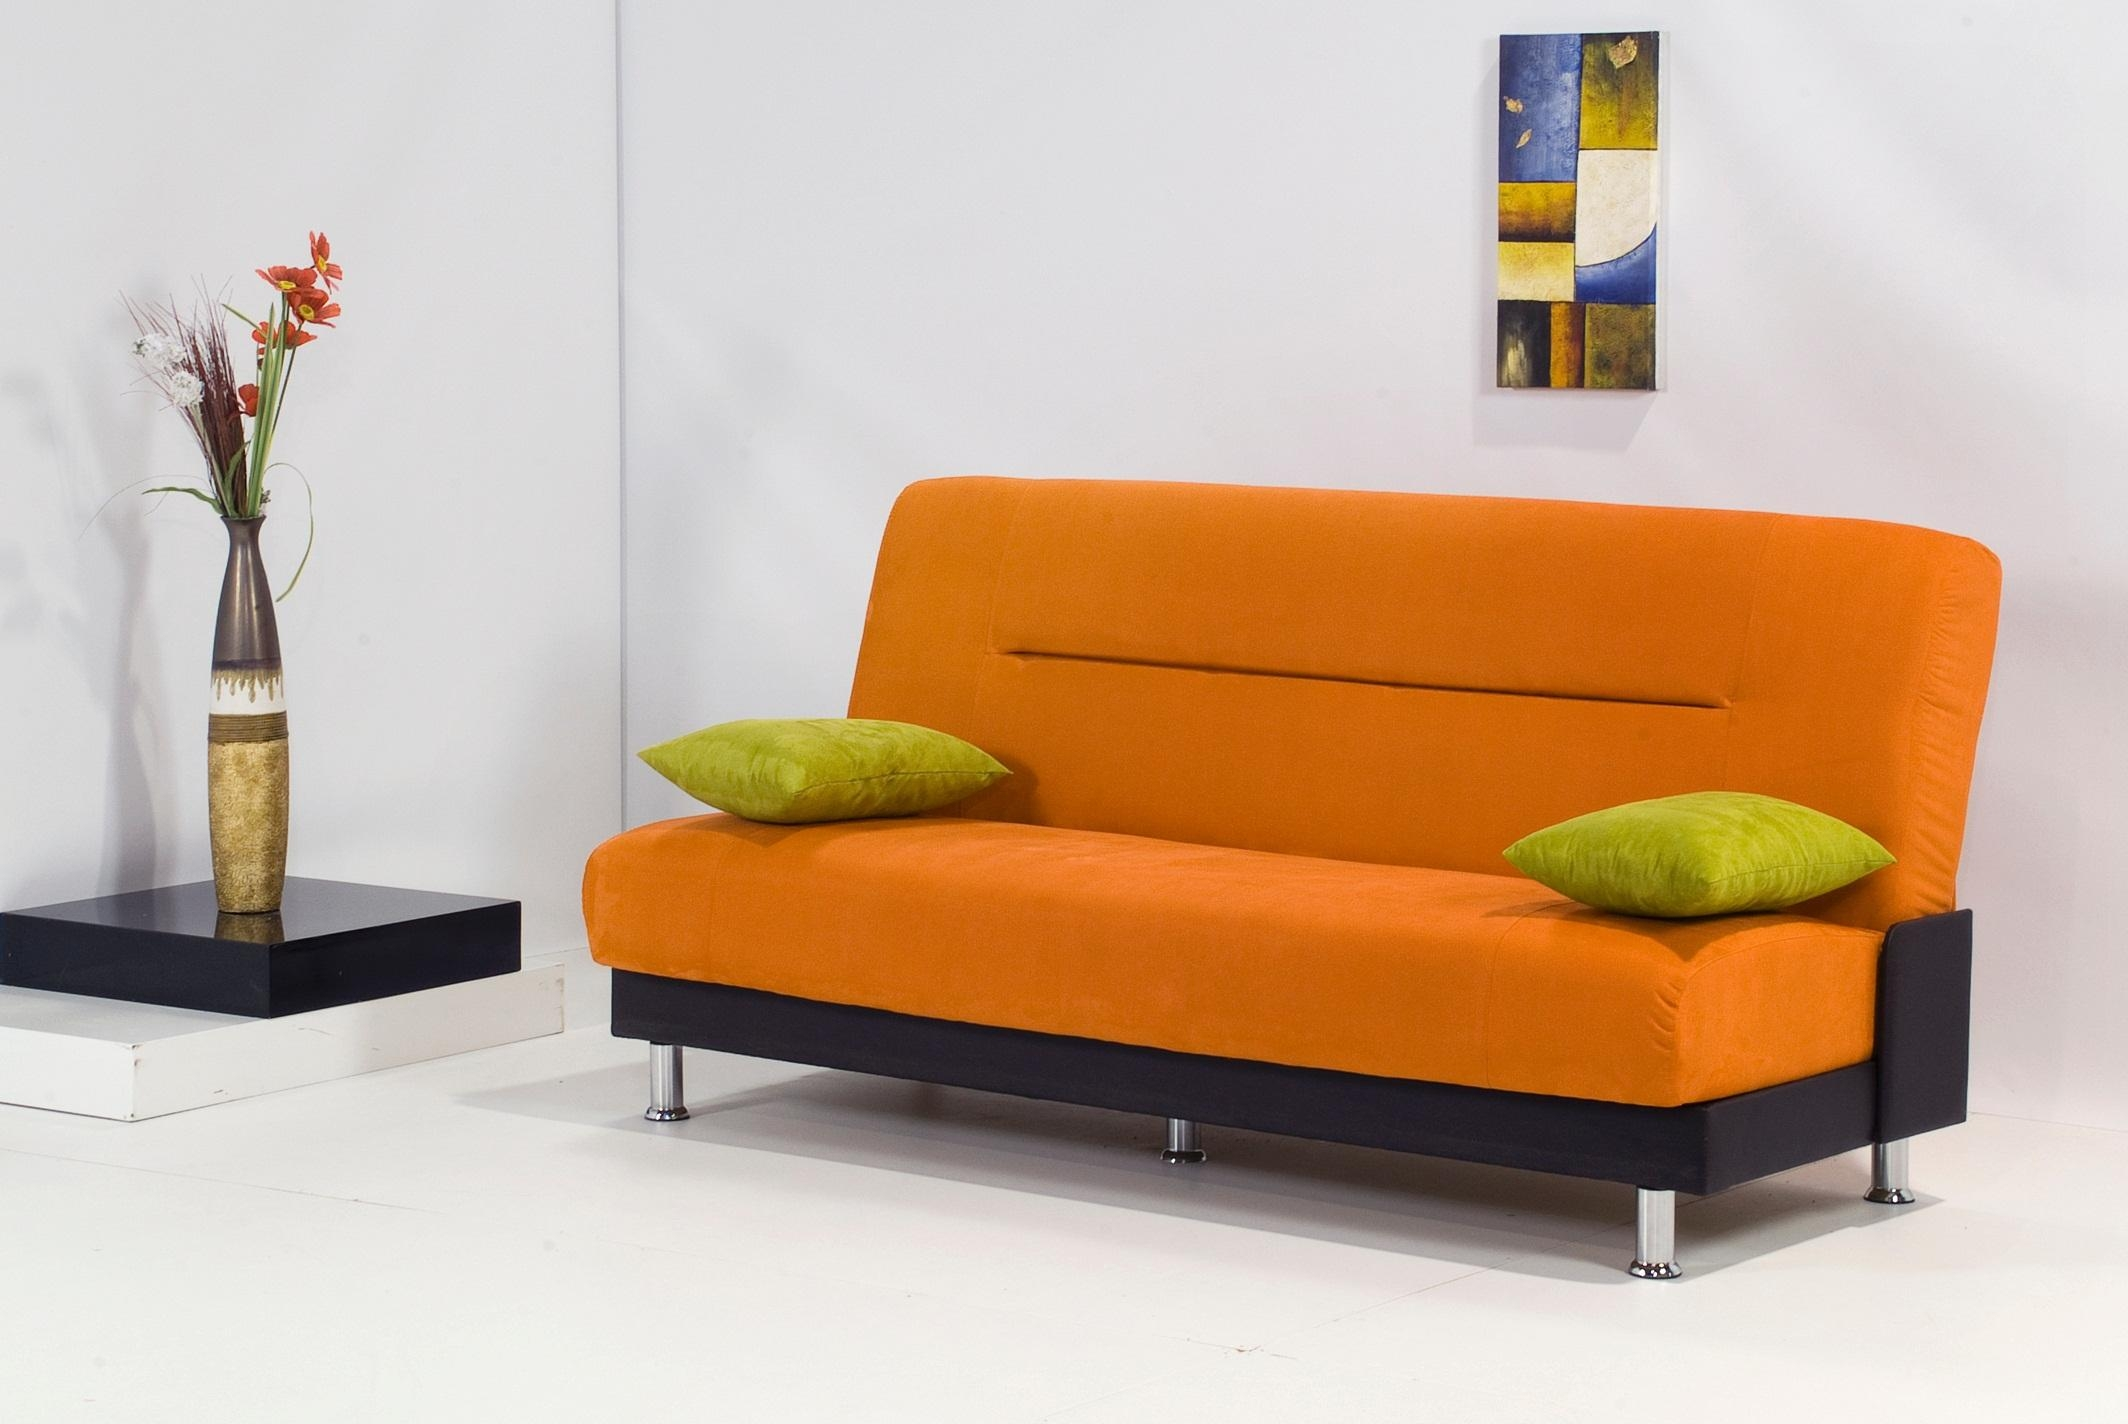 Ikea Sofa Sleeper With Stylish Ikea Orange Sleeper Sofa Design Intended For Orange Ikea Sofas (View 19 of 20)